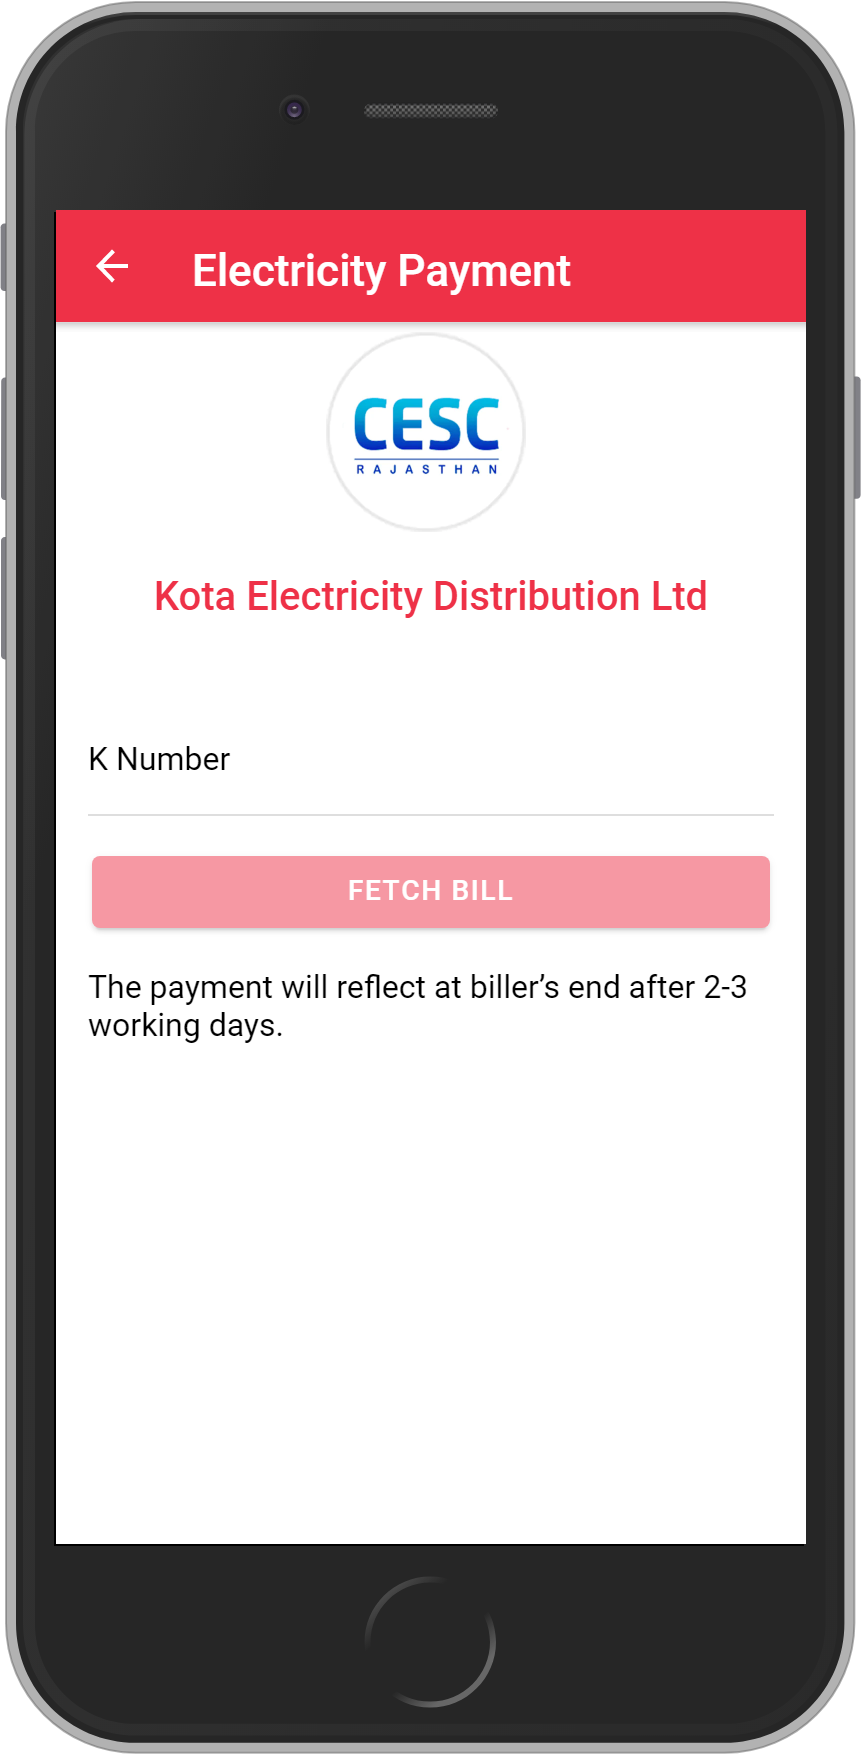 Get UNLIMITED <b>0.1%</b> CASHBACK on Kota Electricity Distribution Ltd. (KEDL) Bill Payment.